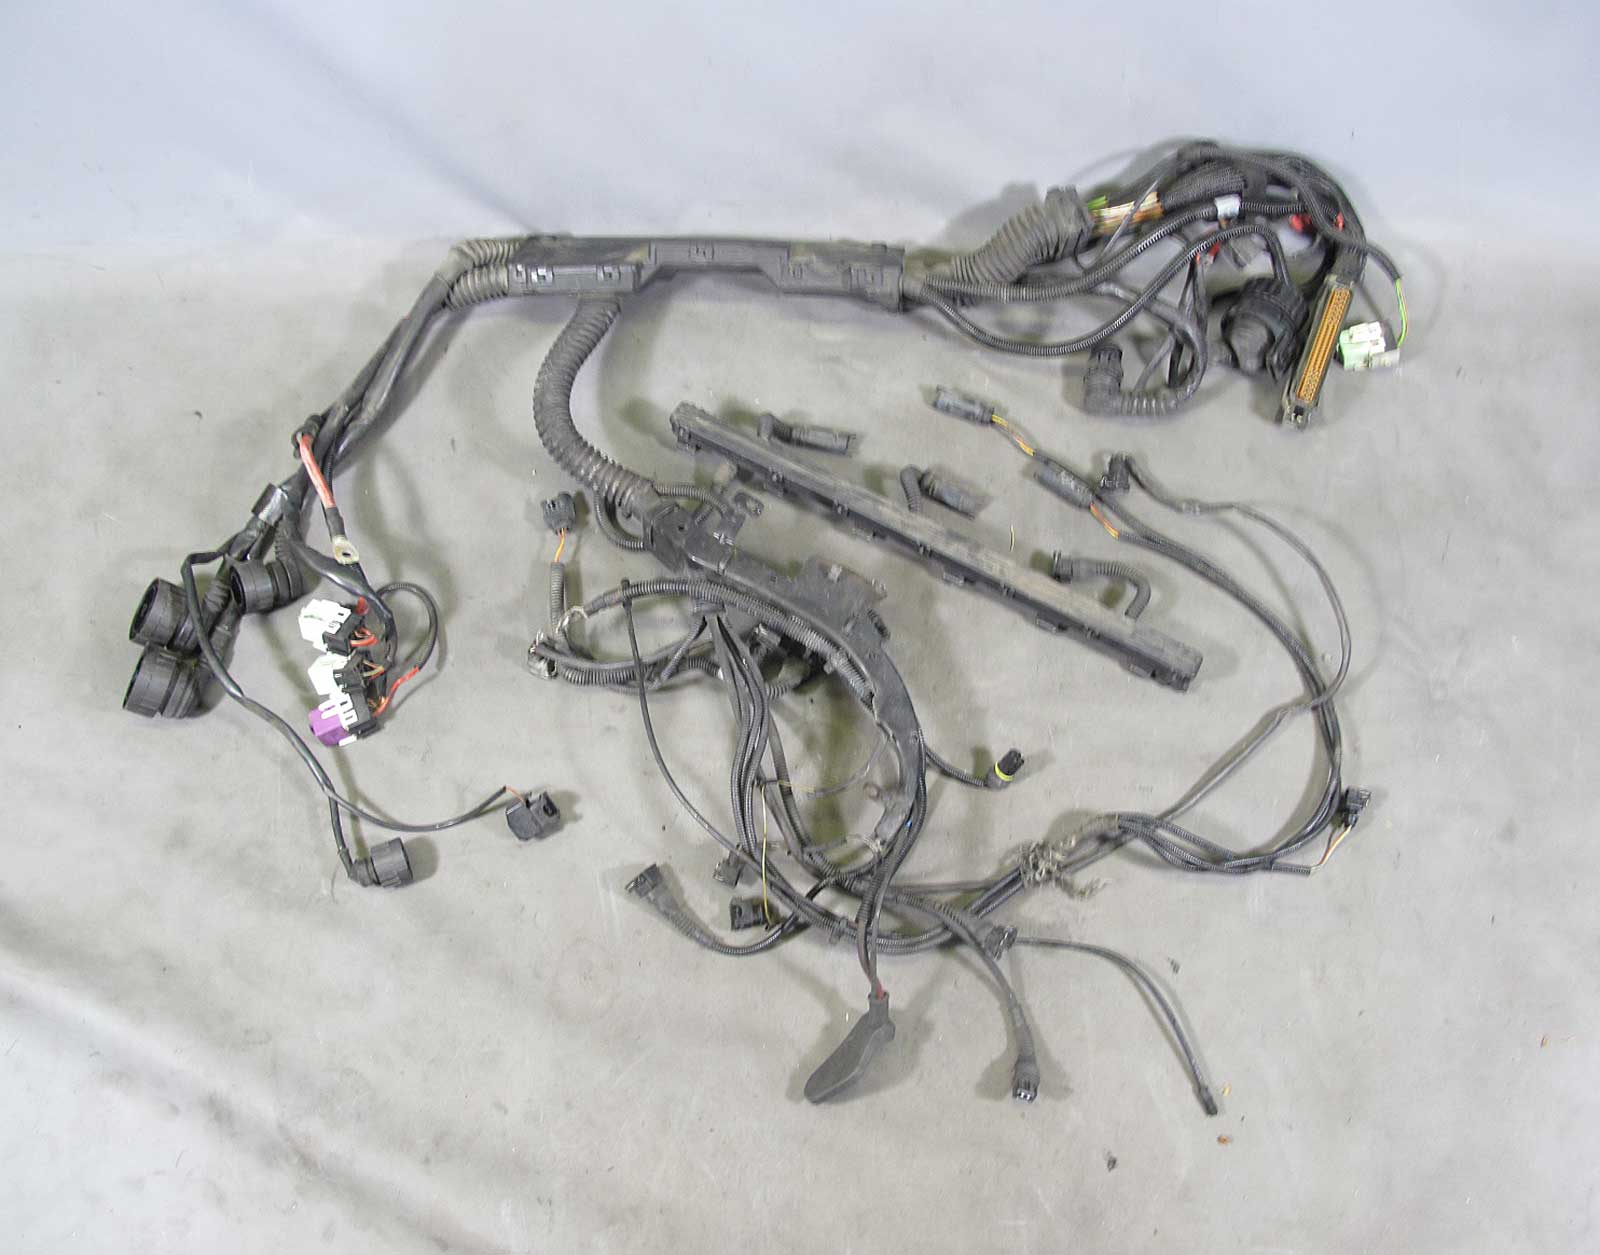 Motor Bmw E36 Arnés De Cableado Manual Asc T 97 98 99 328i 328is 200 BMW  328I 1996 Bmw 328i Wiring Harness